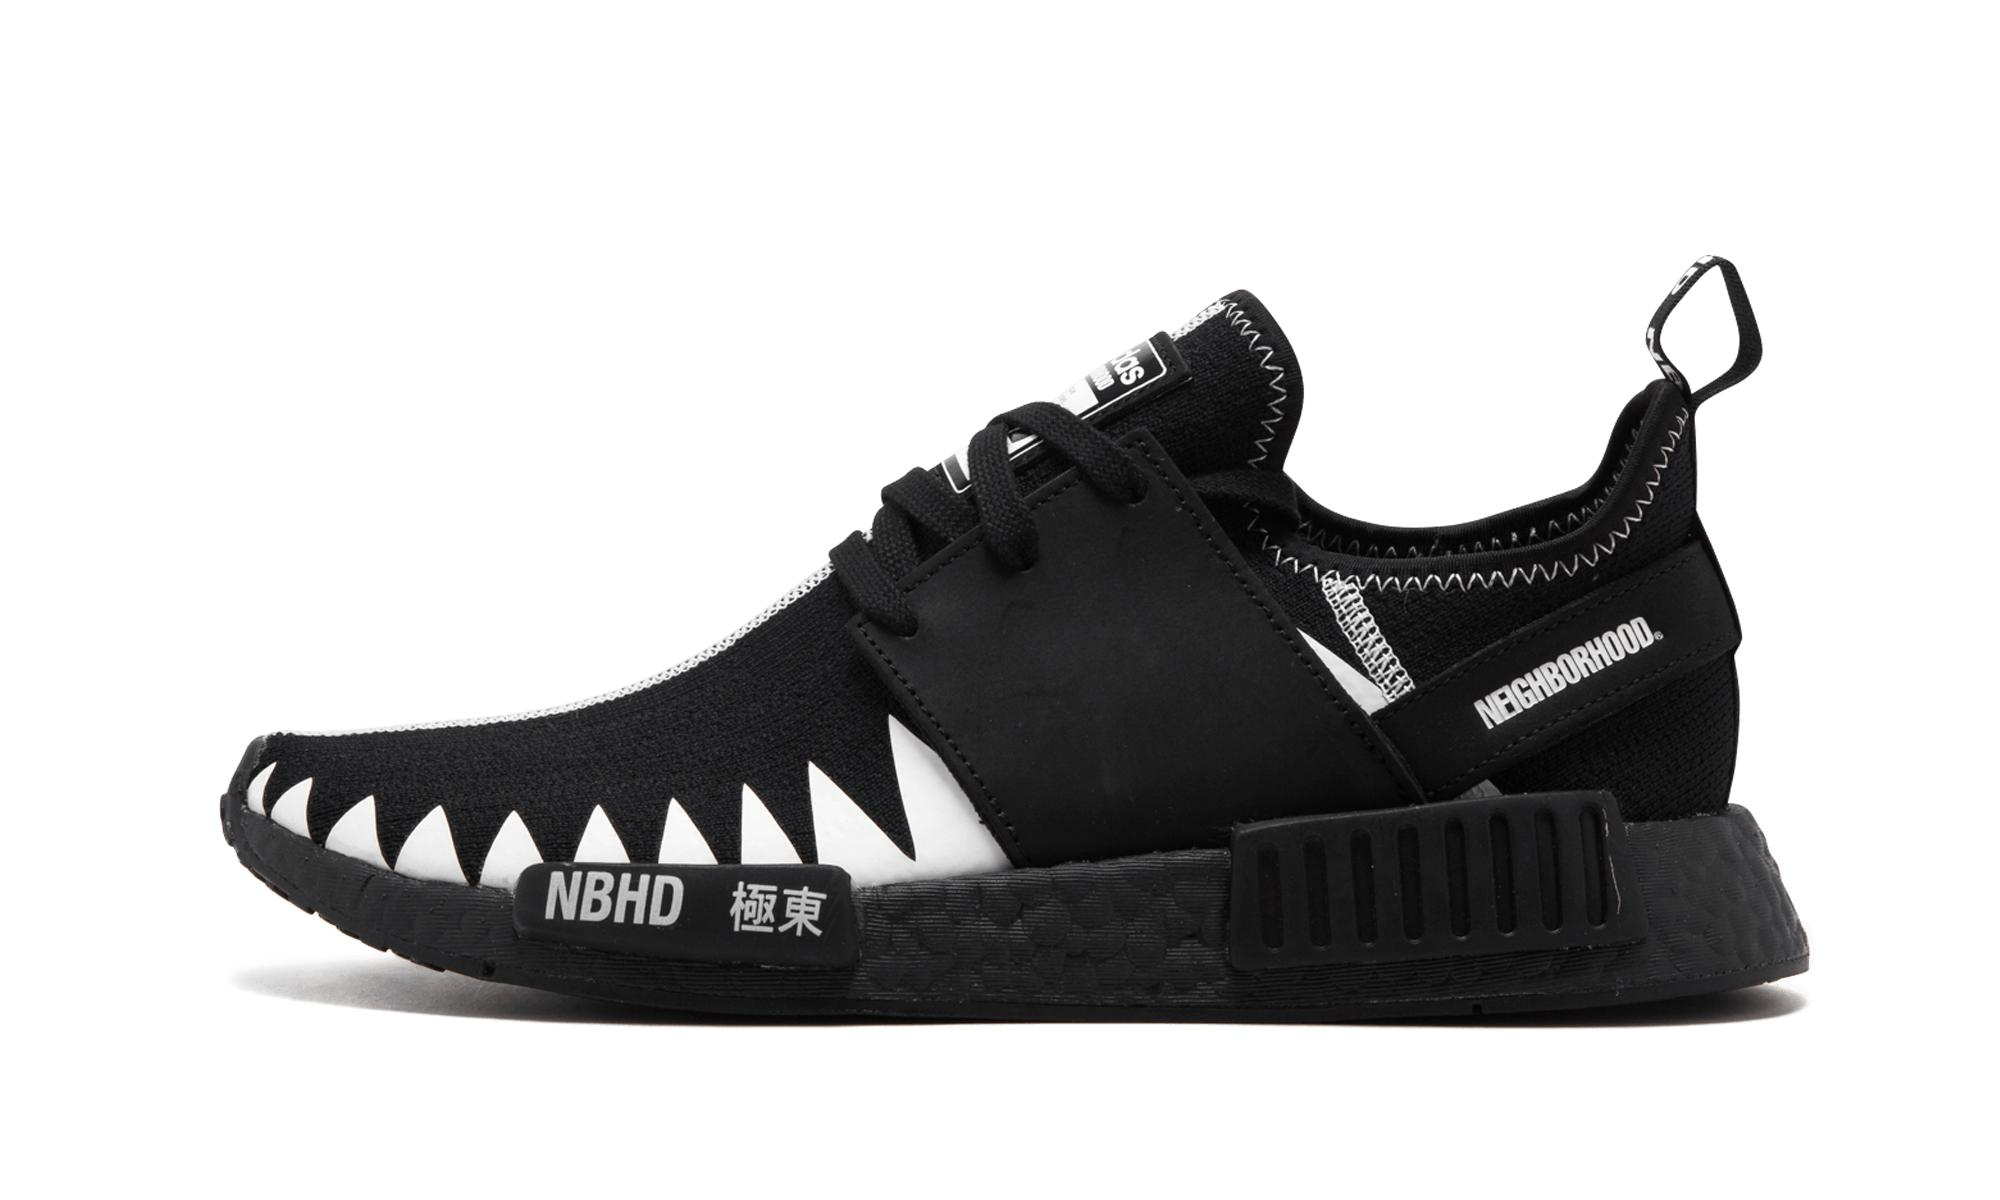 low priced 69264 5aa0b adidas Nmd_r1_pk_nbhd in Black for Men - Save 18% - Lyst